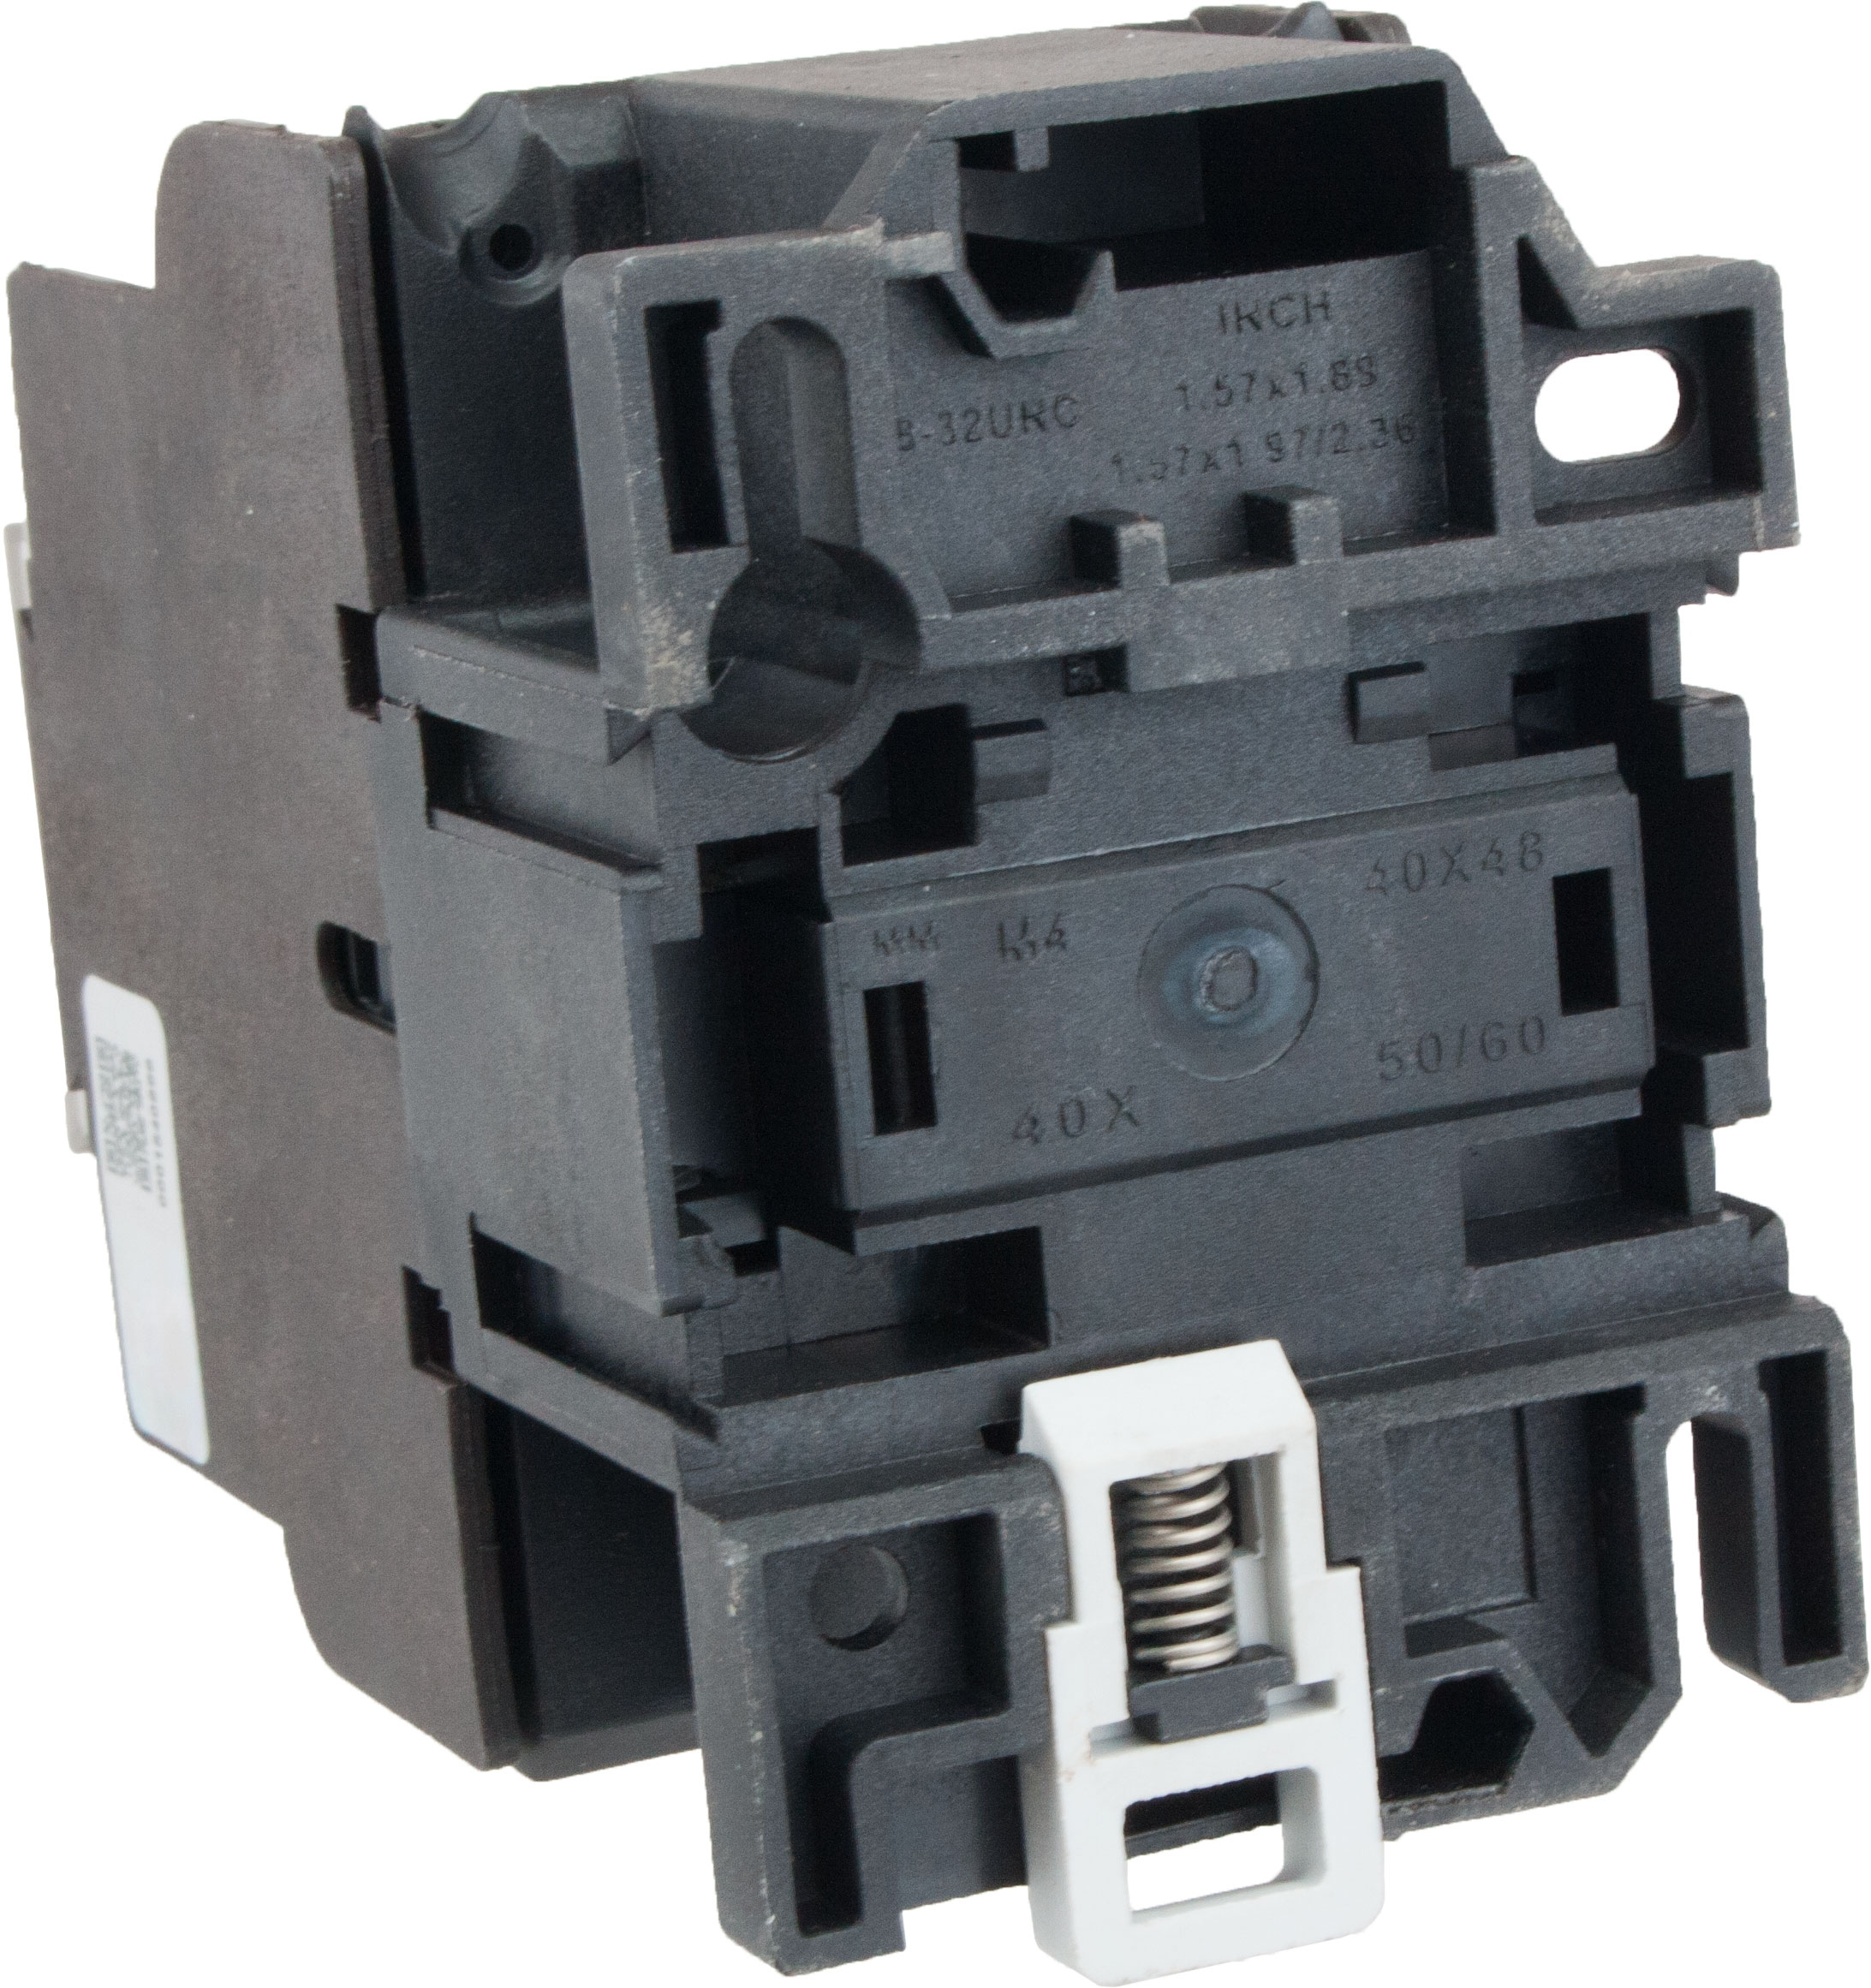 3 Pole Contactor 32 Amp 1 N O 220 Volt Ac Coil Tc1d3210m7 Elecdirect Breaker Fuse Box With